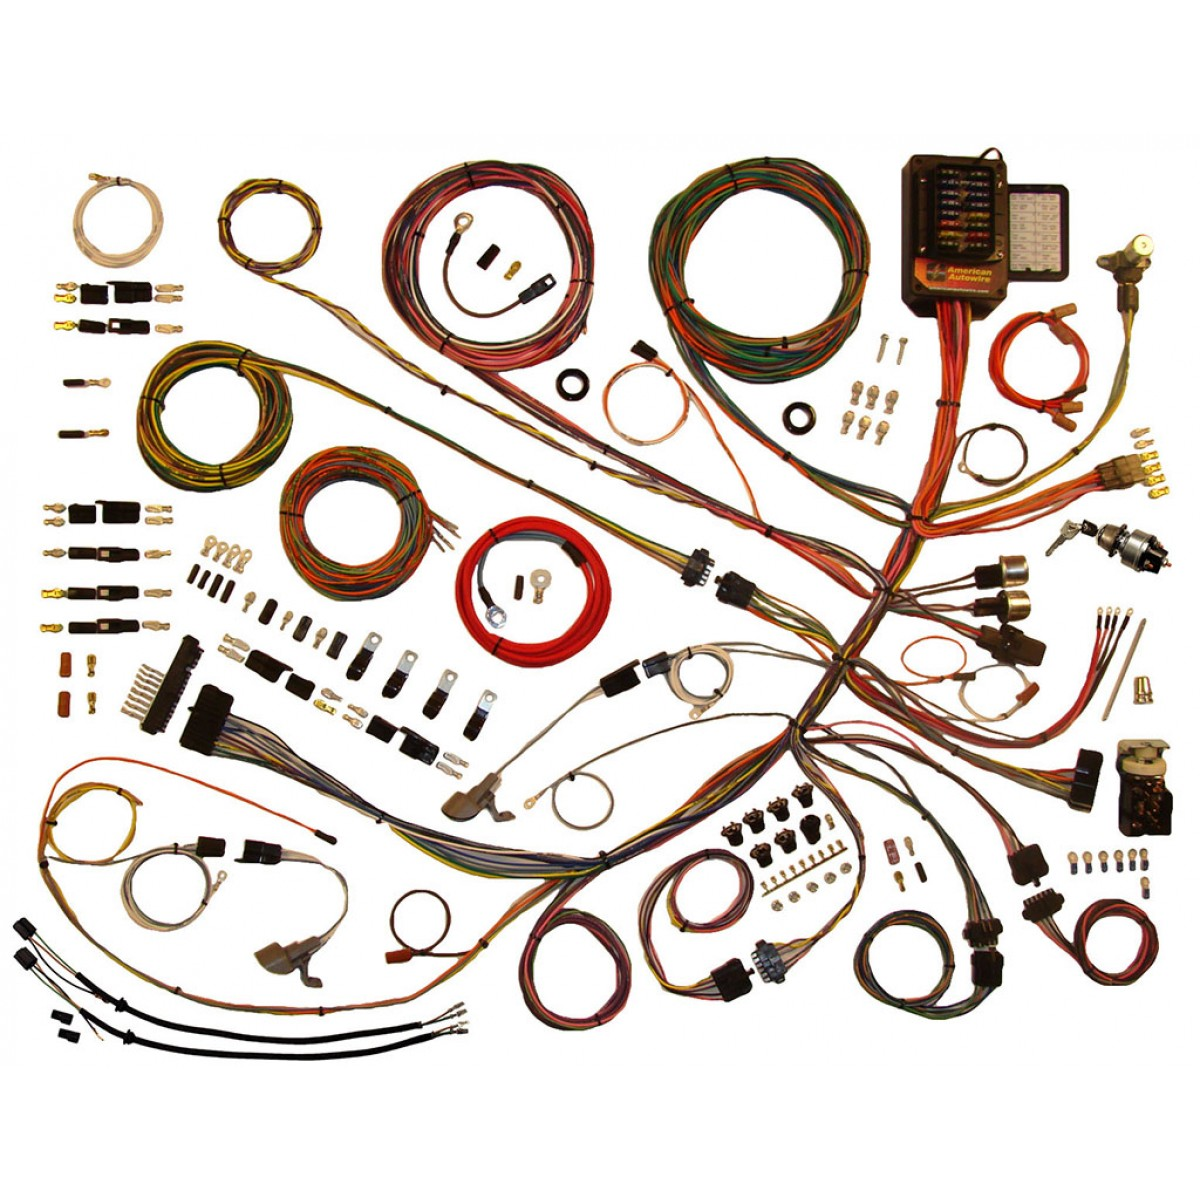 complete wiring harness kit 1953 1956 ford f100 part 510303 ford truck wiring harness f100 1953 1956 ford f100 wiring harness complete wiring harness kit ford wiring harness at honlapkeszites.co